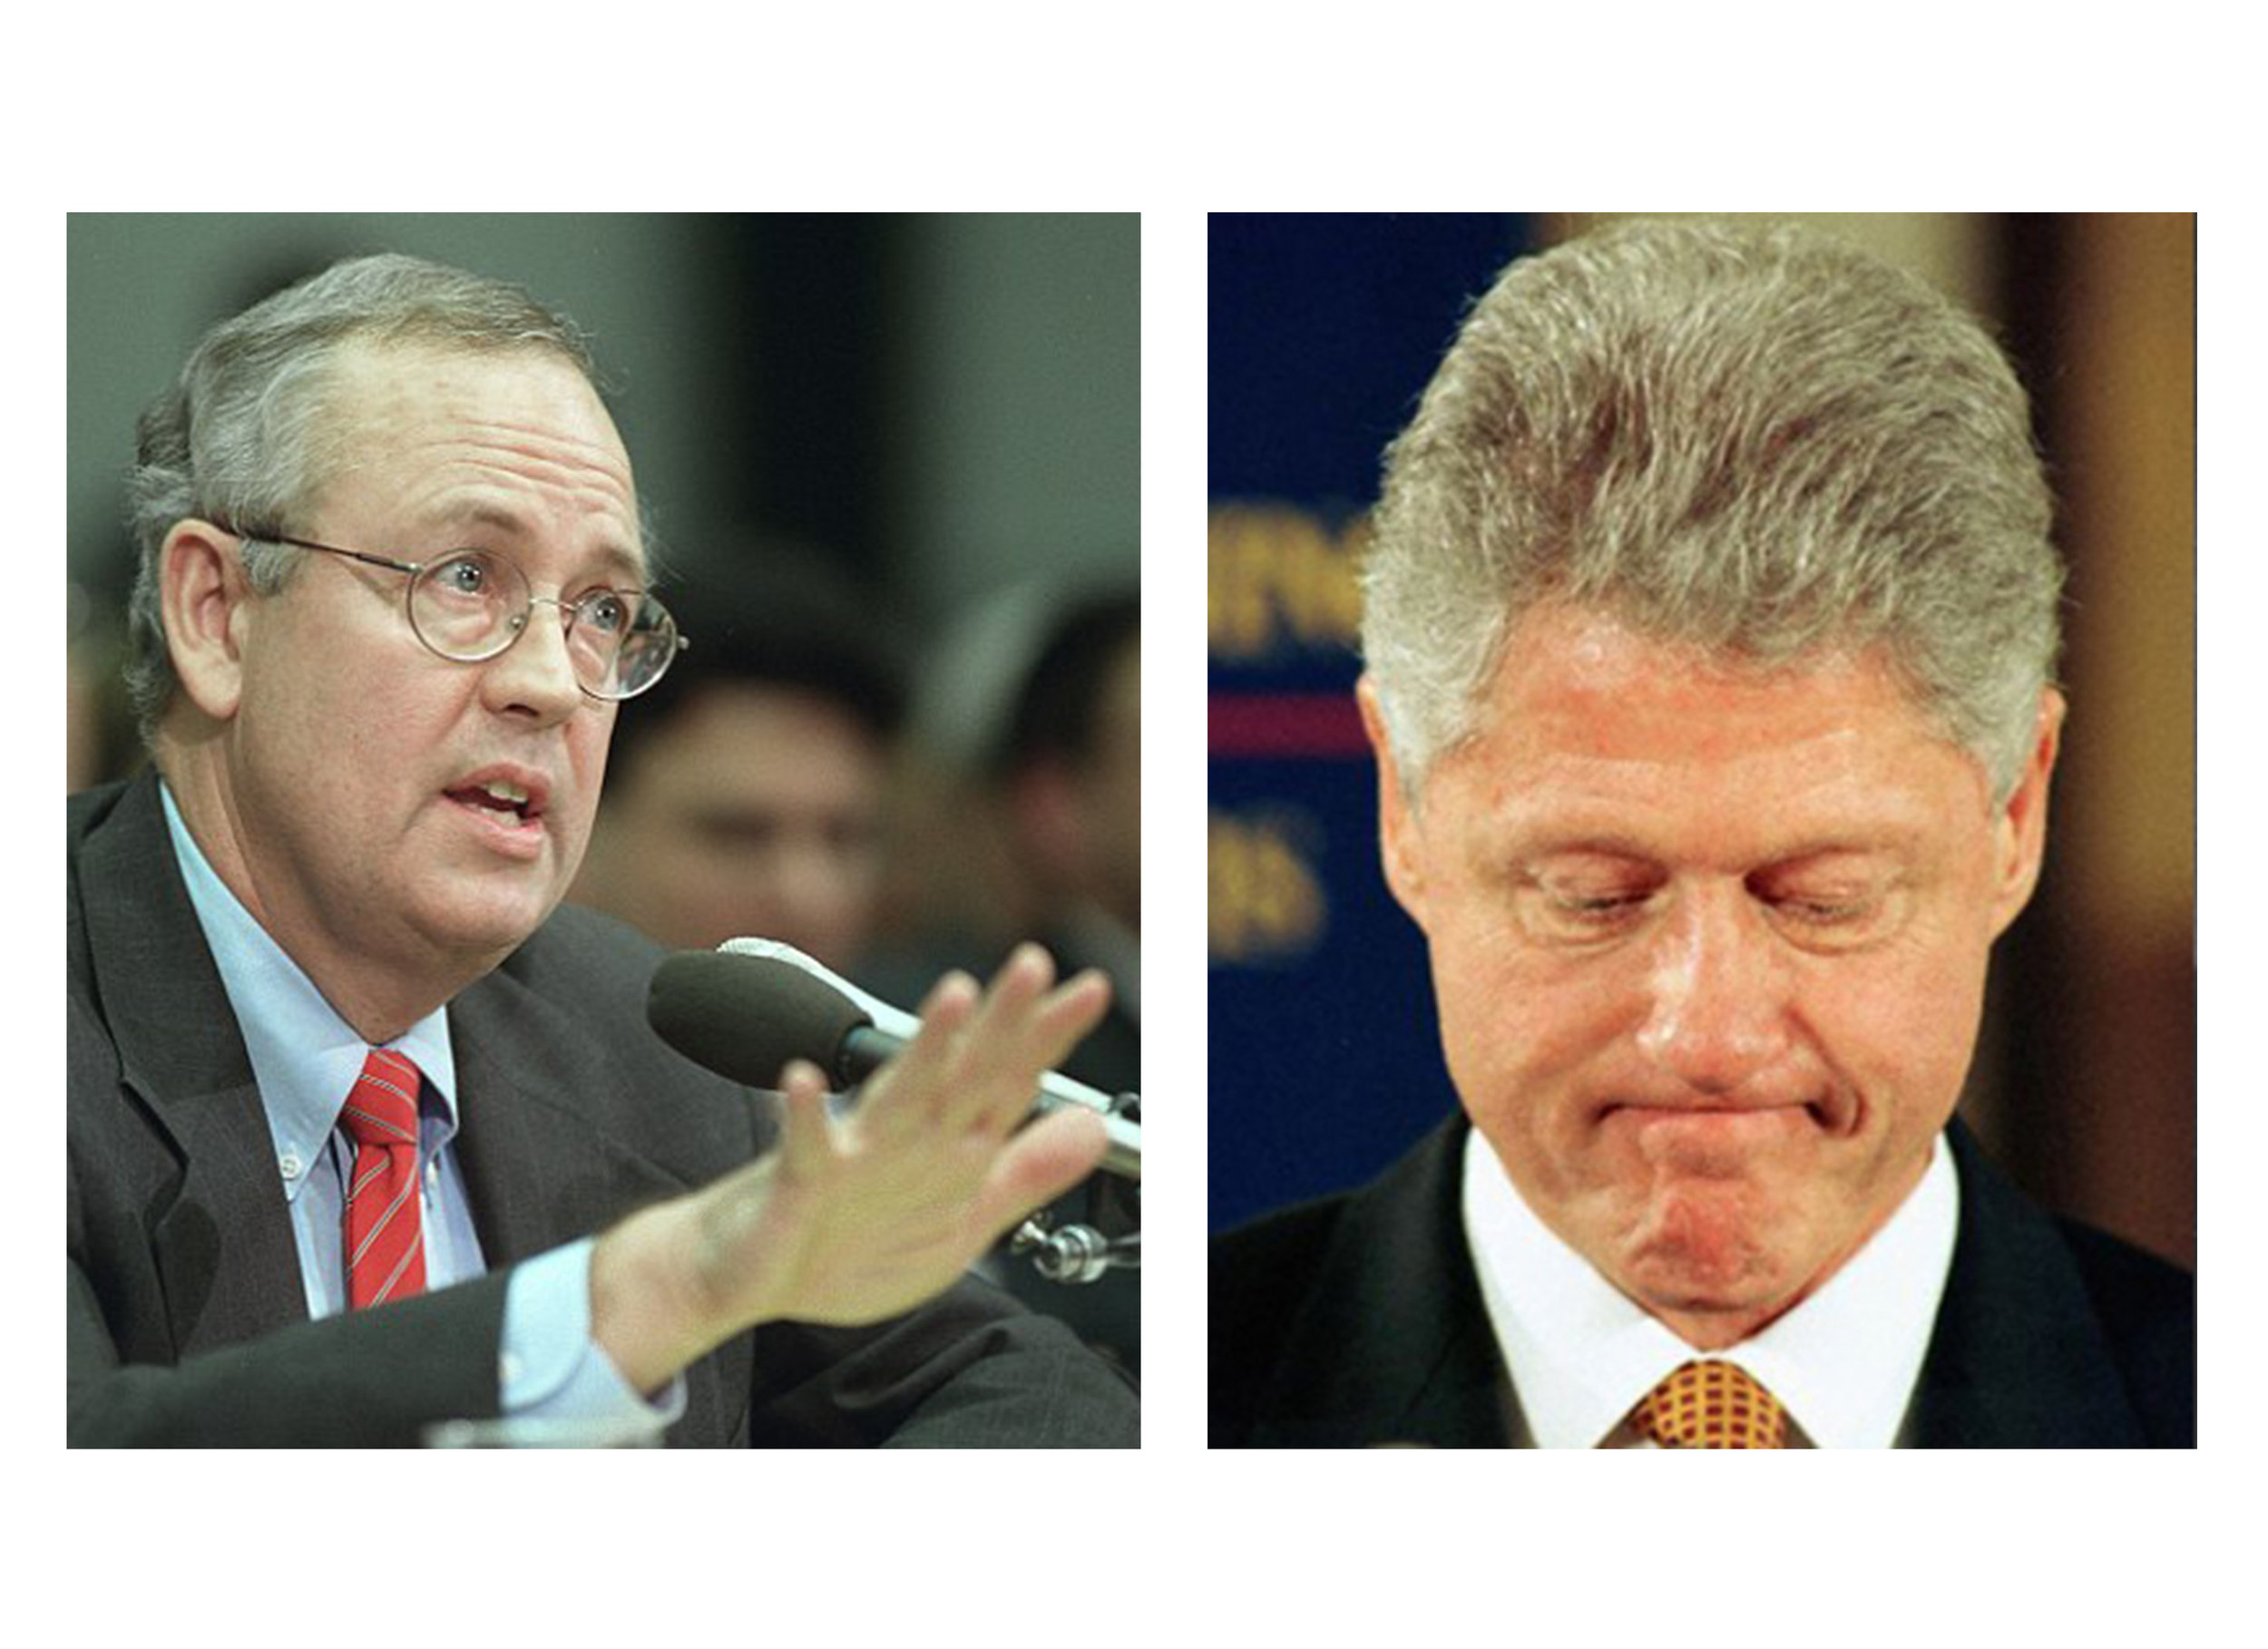 Independent Counsel Kenneth Starr (left) pursued and caught a president who committed out-of-marriage sex acts with an intern.  A philandering president…can you believe that?  Sad, but true.